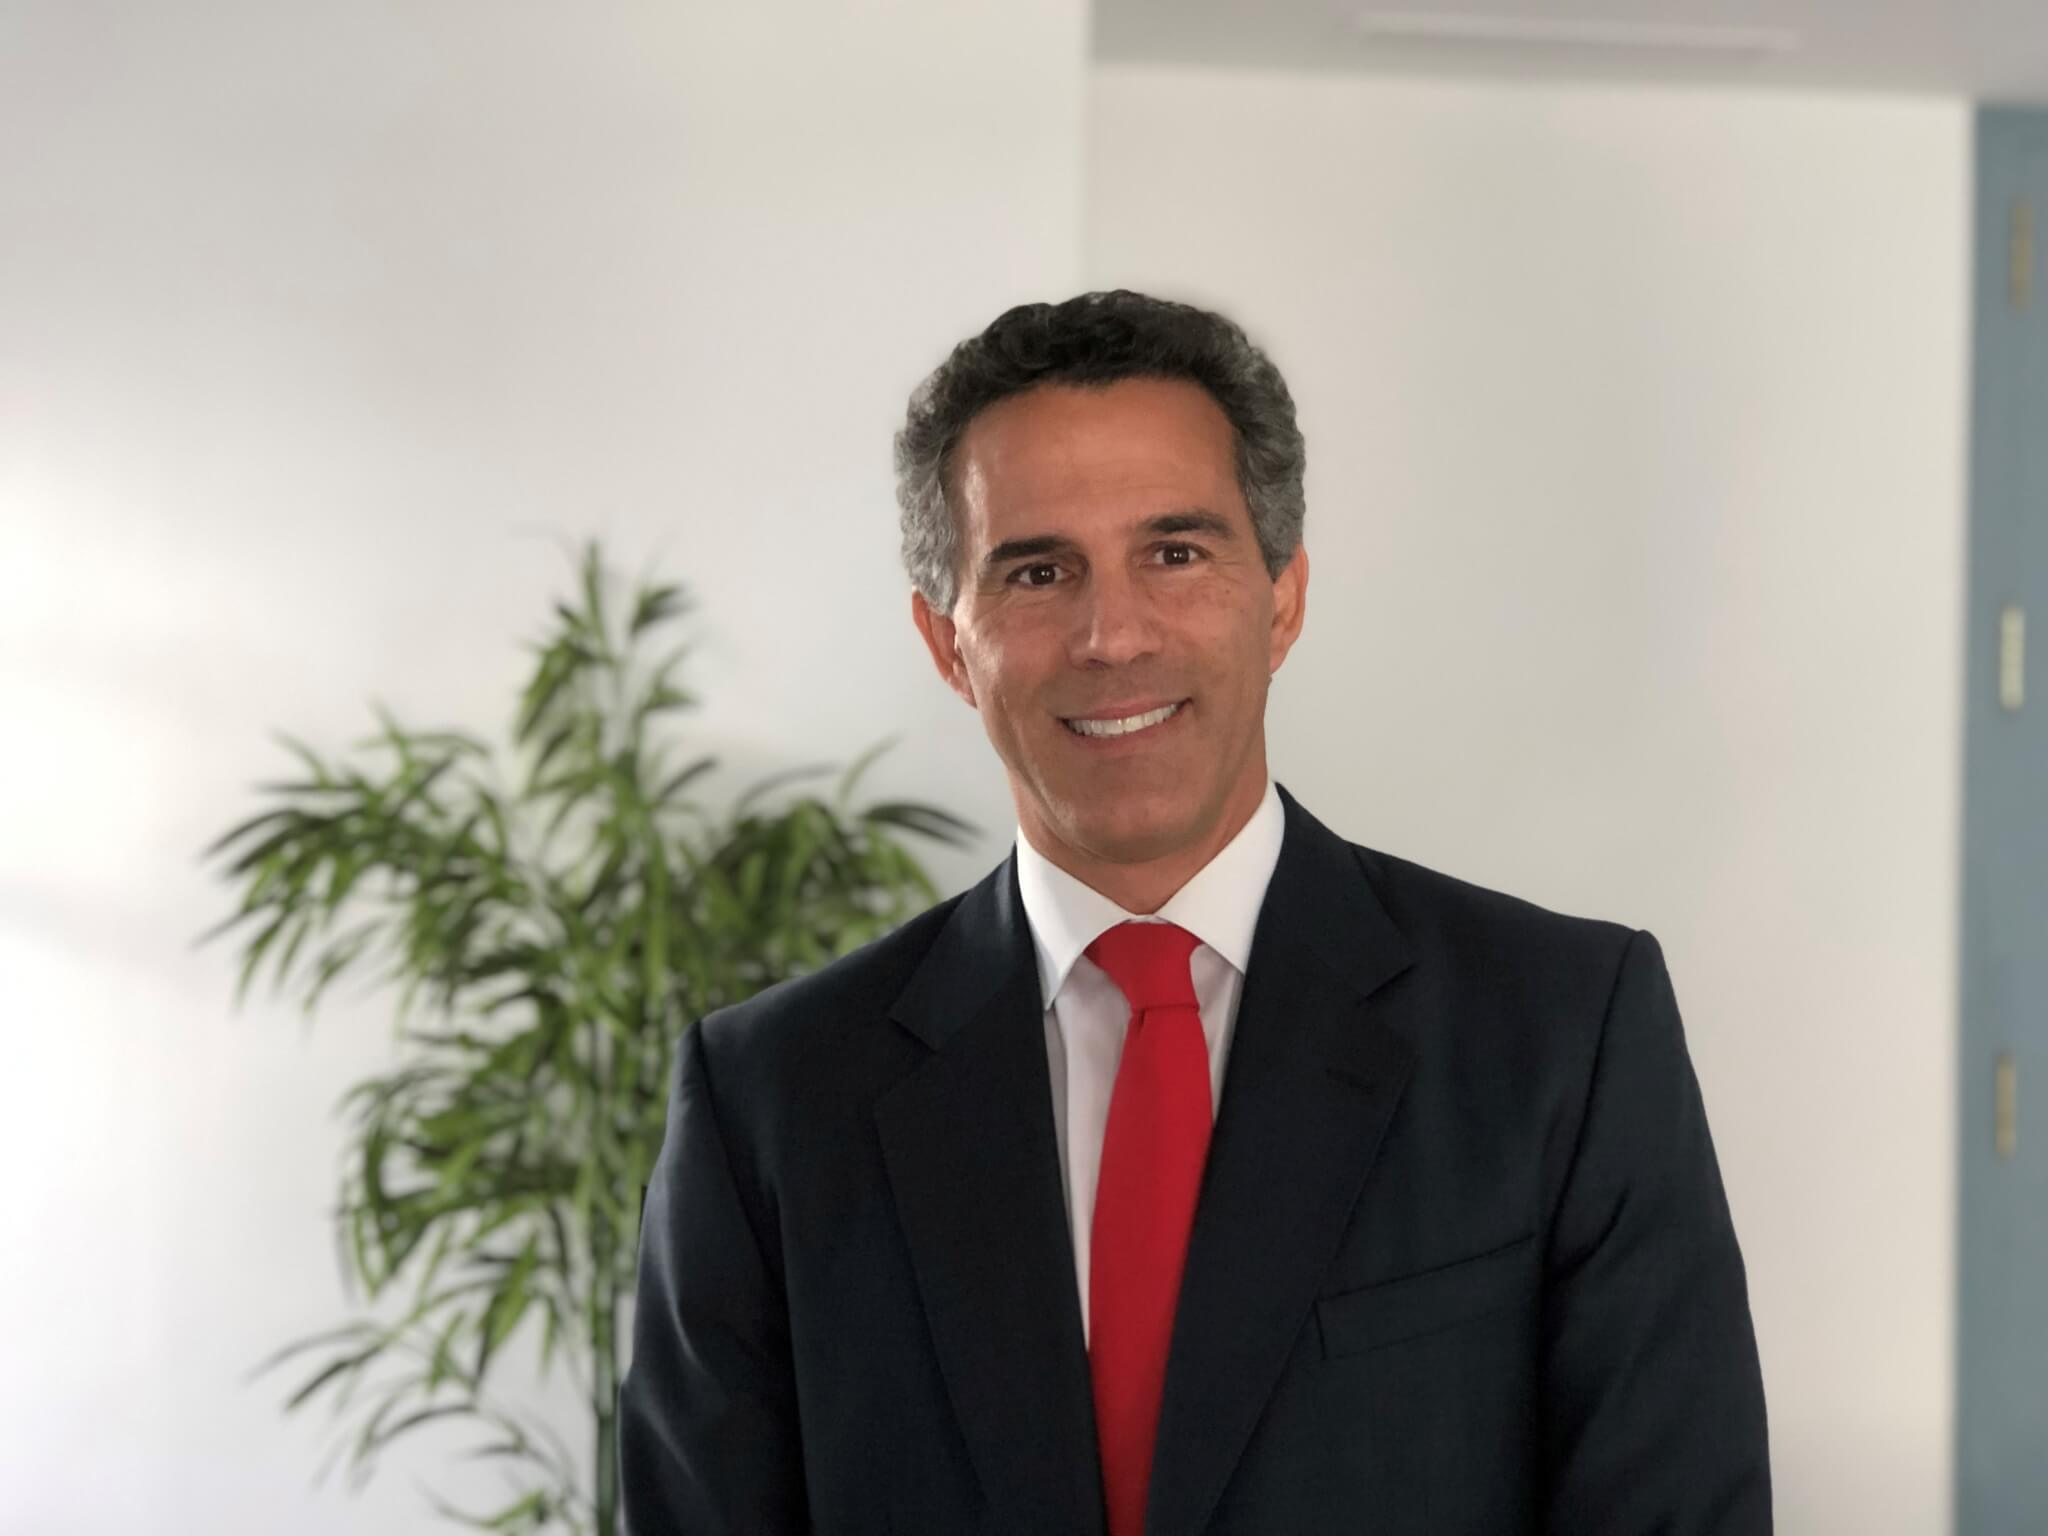 Pablo Pérez-Bedmar, Chief Business Development Officer Ufinet